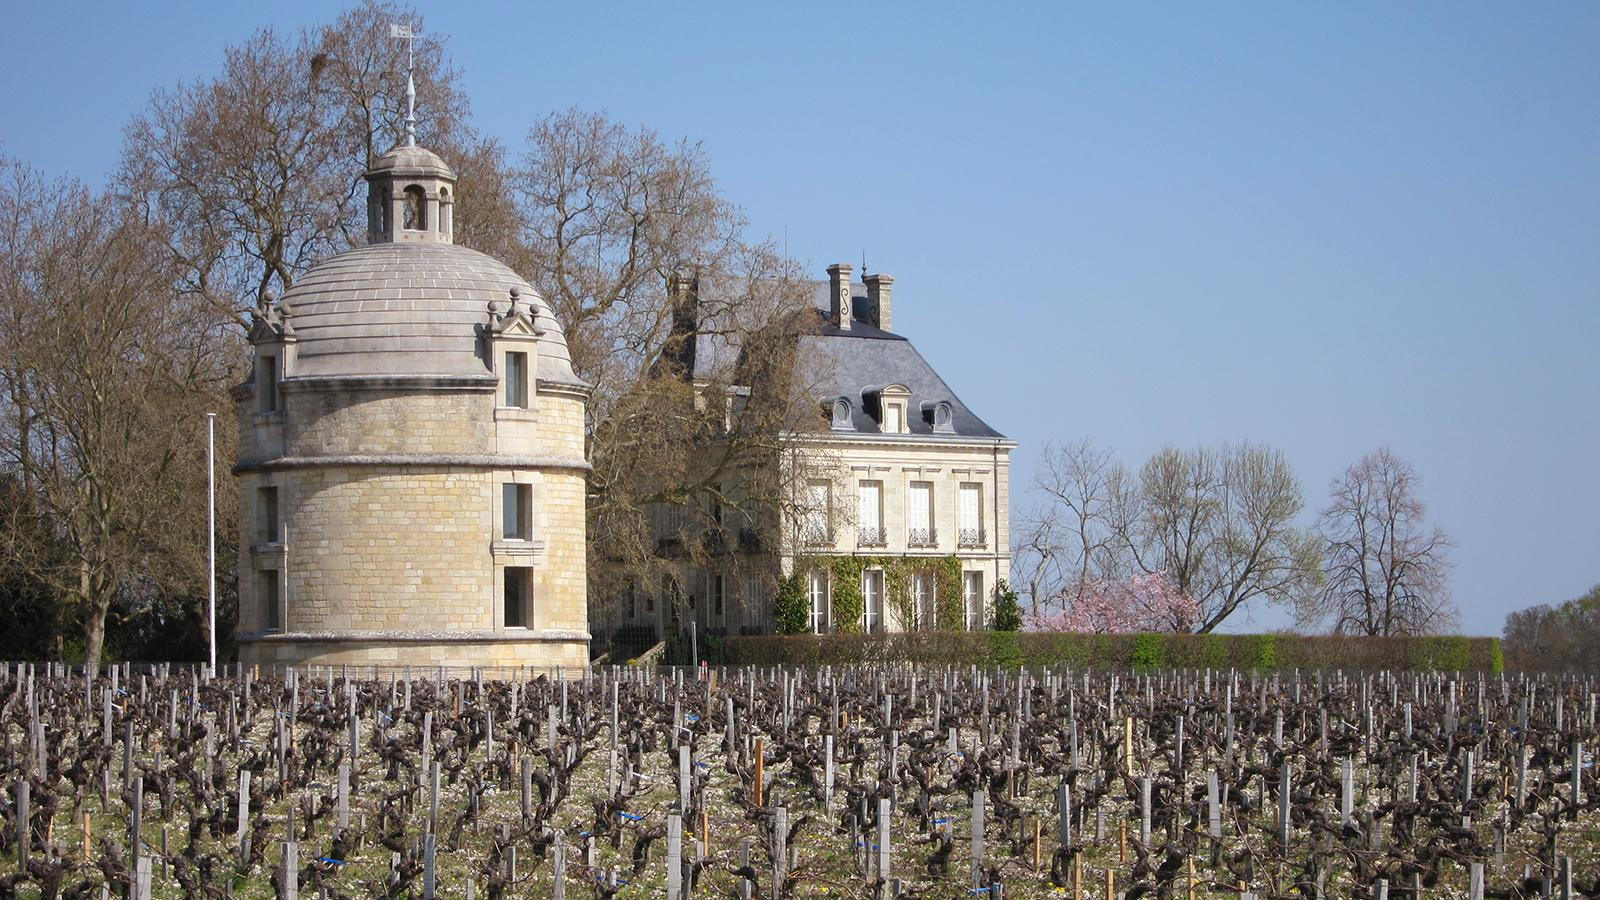 After converting to biodynamic farming in 2016, Château Latour's 2017 marks a new shift to indigenous yeast fermentations.